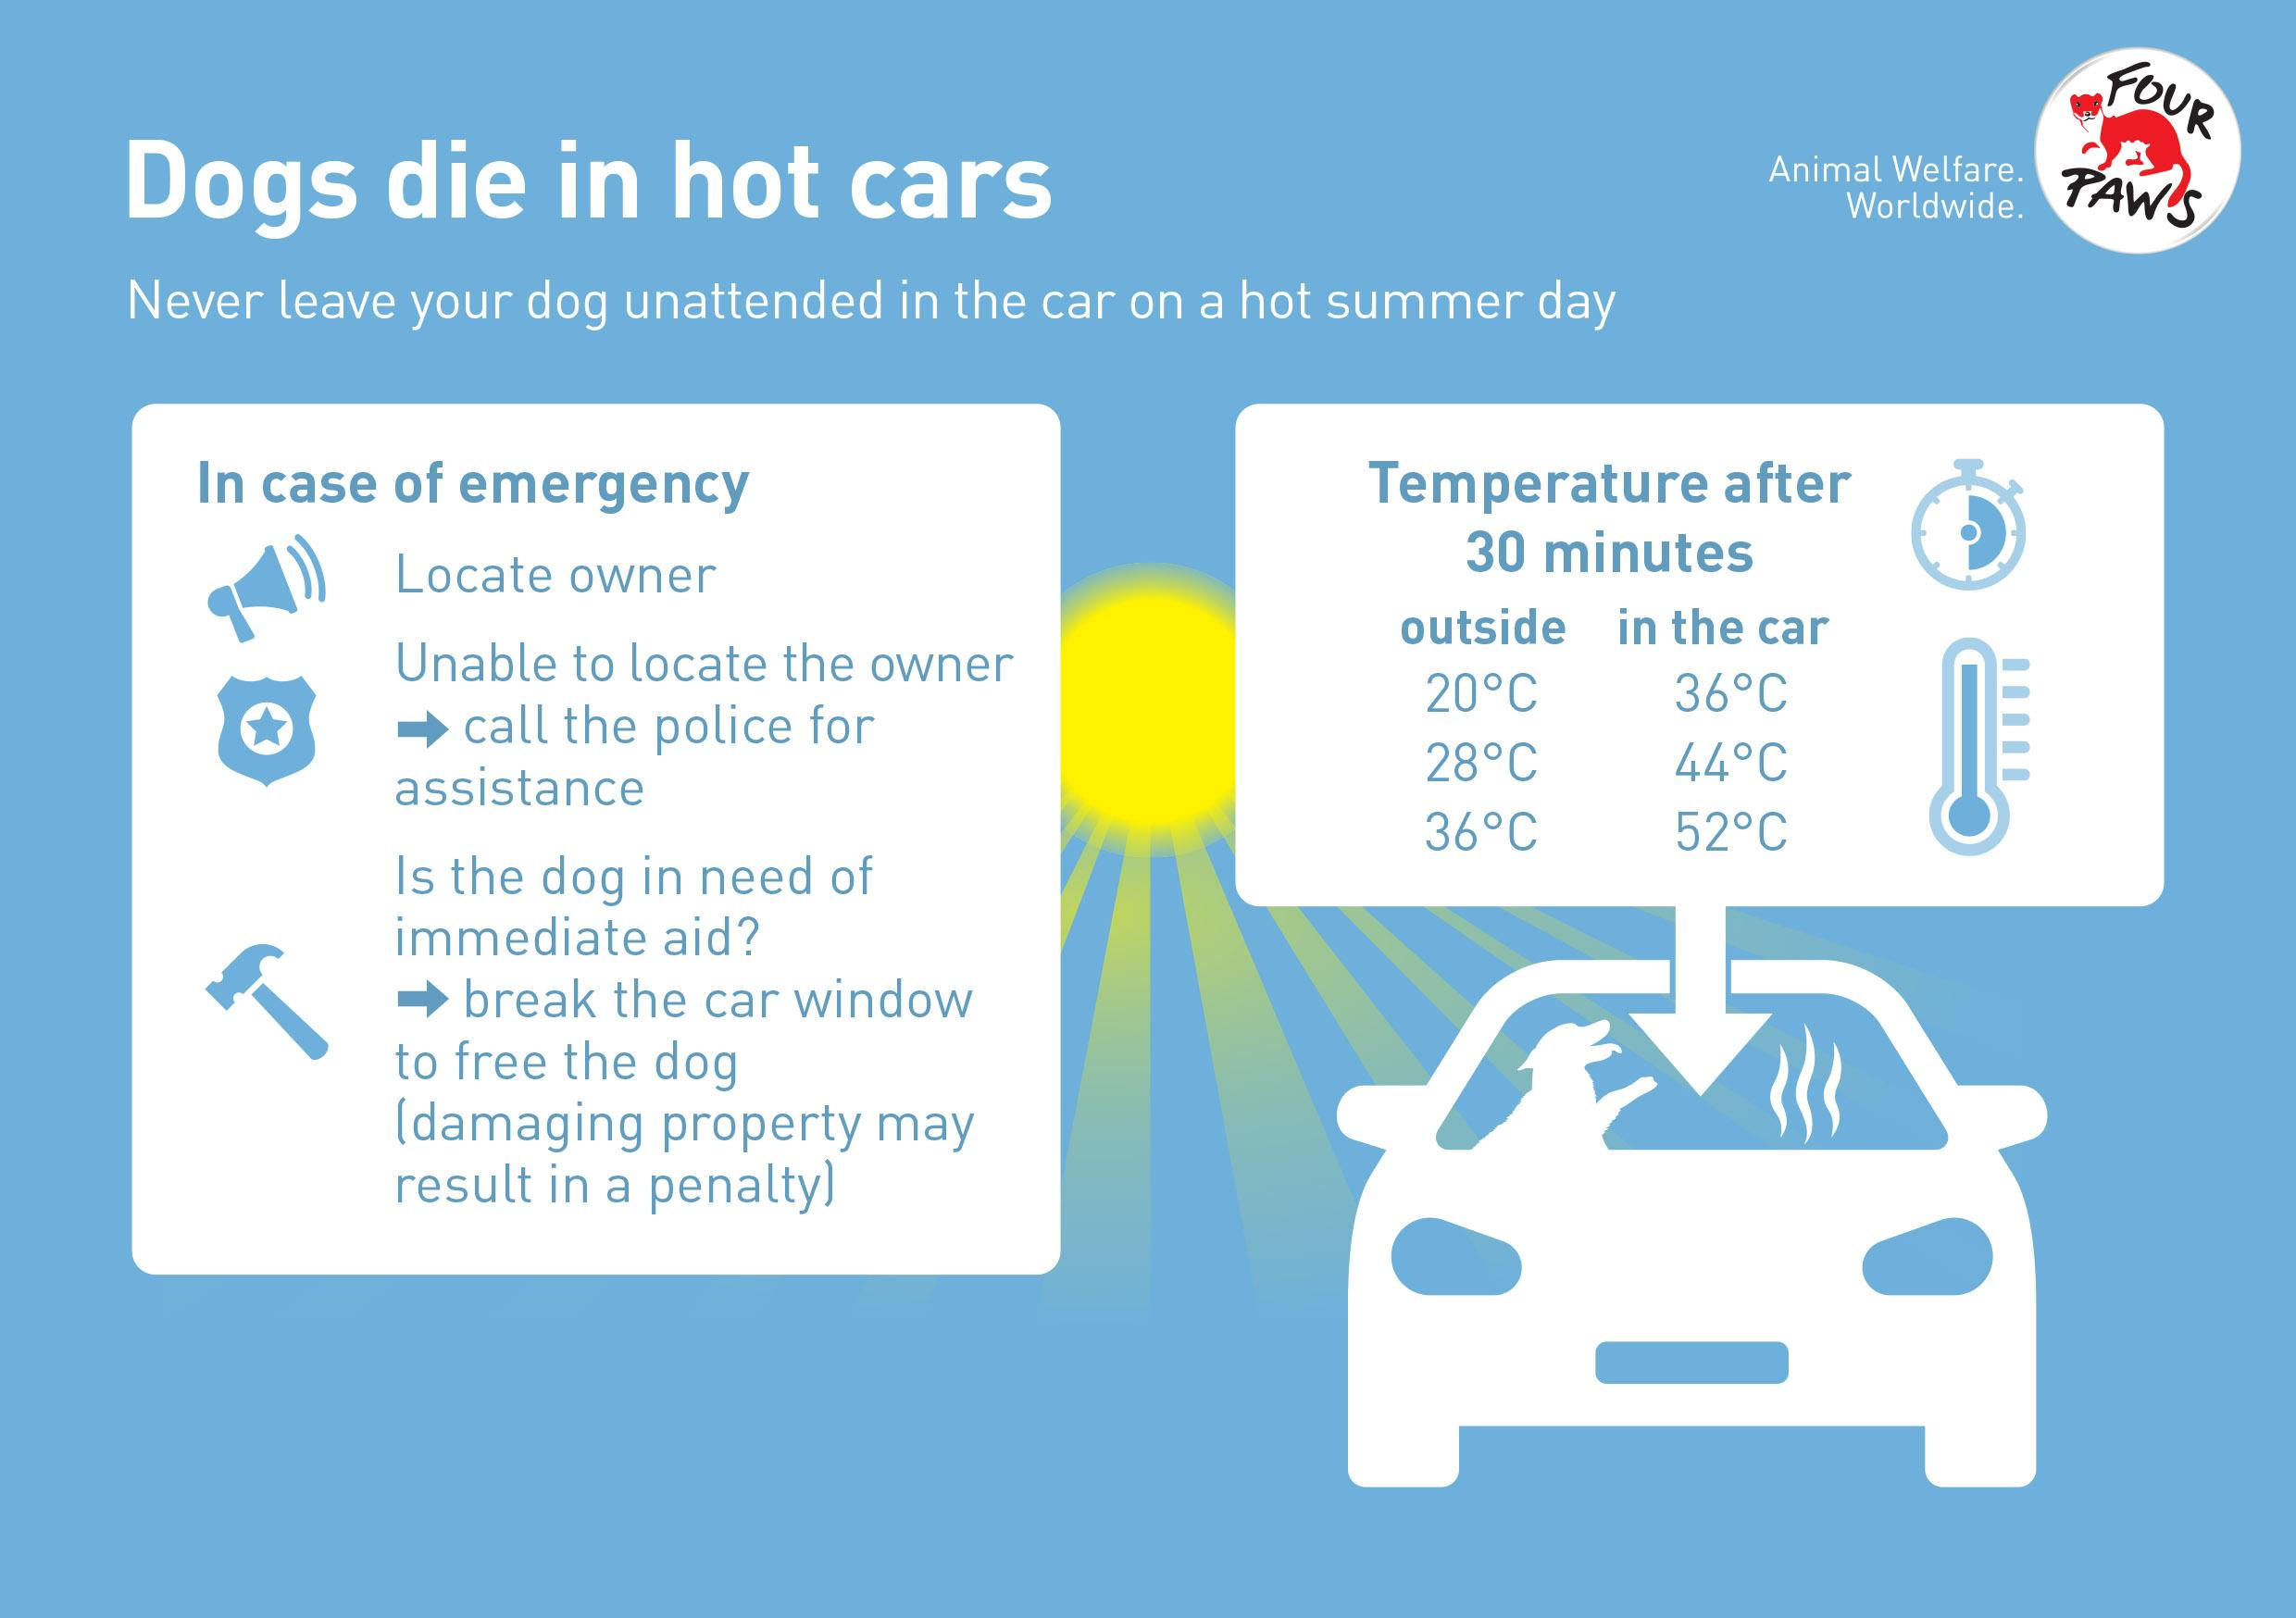 Hot cars are a death trap for dogs